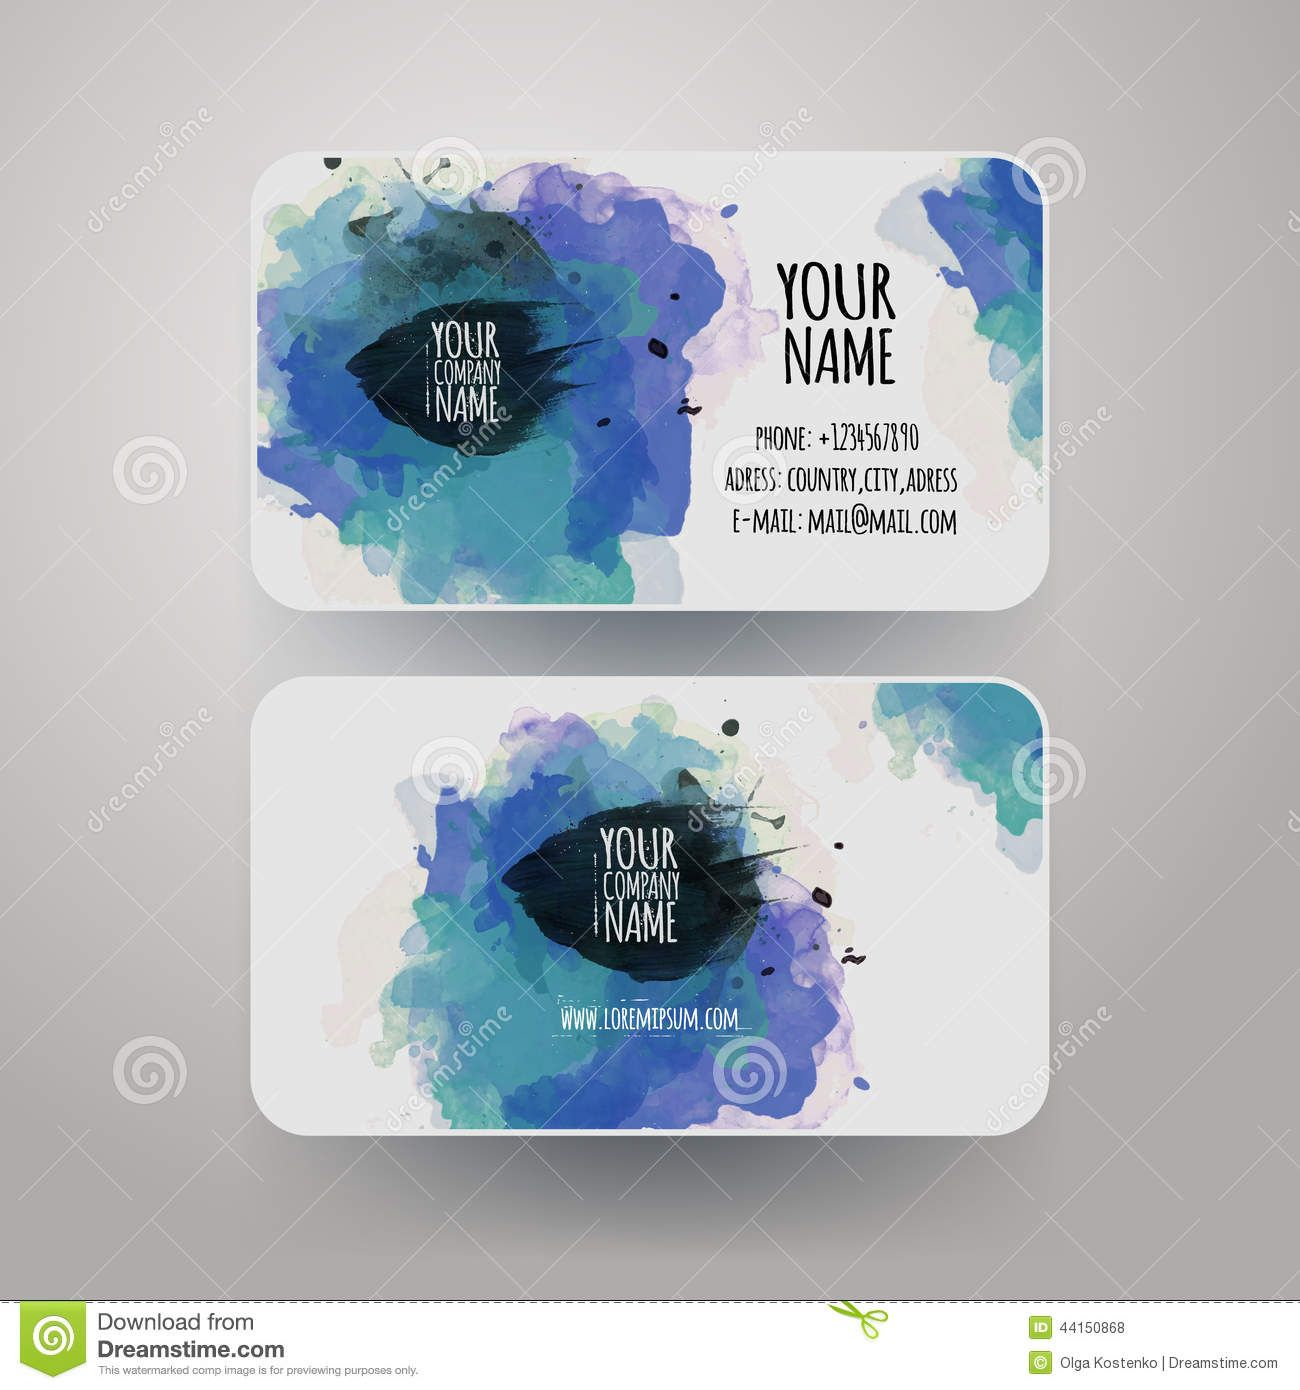 Vector template watercolor business cards download from over 35 vector template watercolor business cards download from over 35 million high quality stock photos alramifo Images